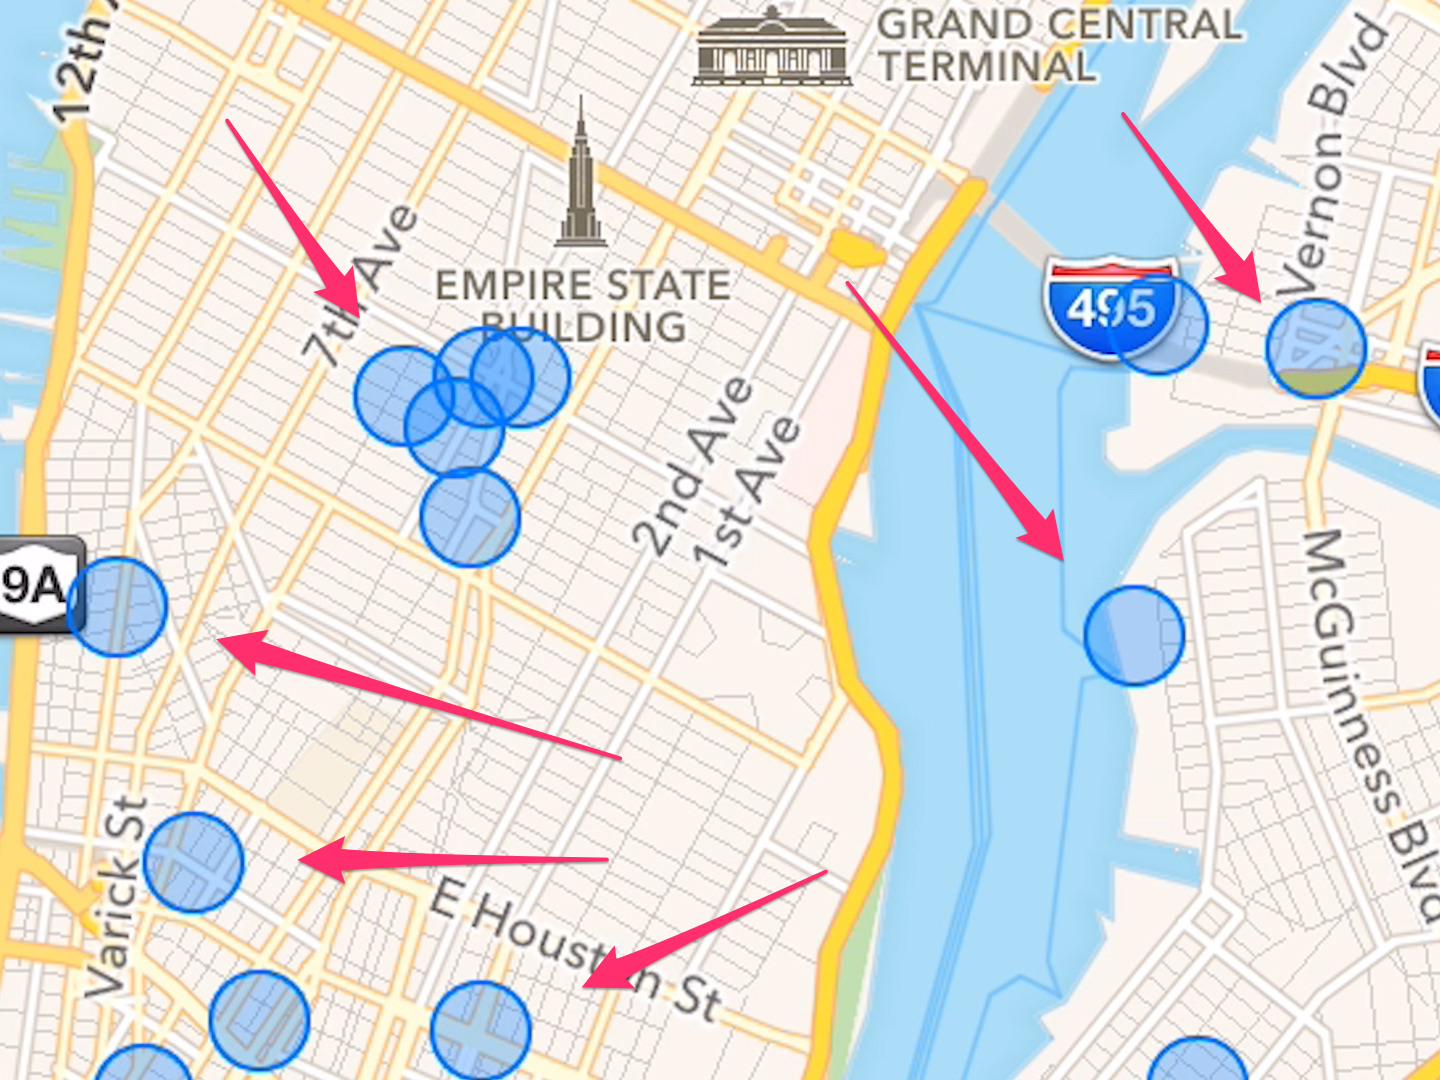 Hidden Map on Your iPhone that Tracks Where You've Been